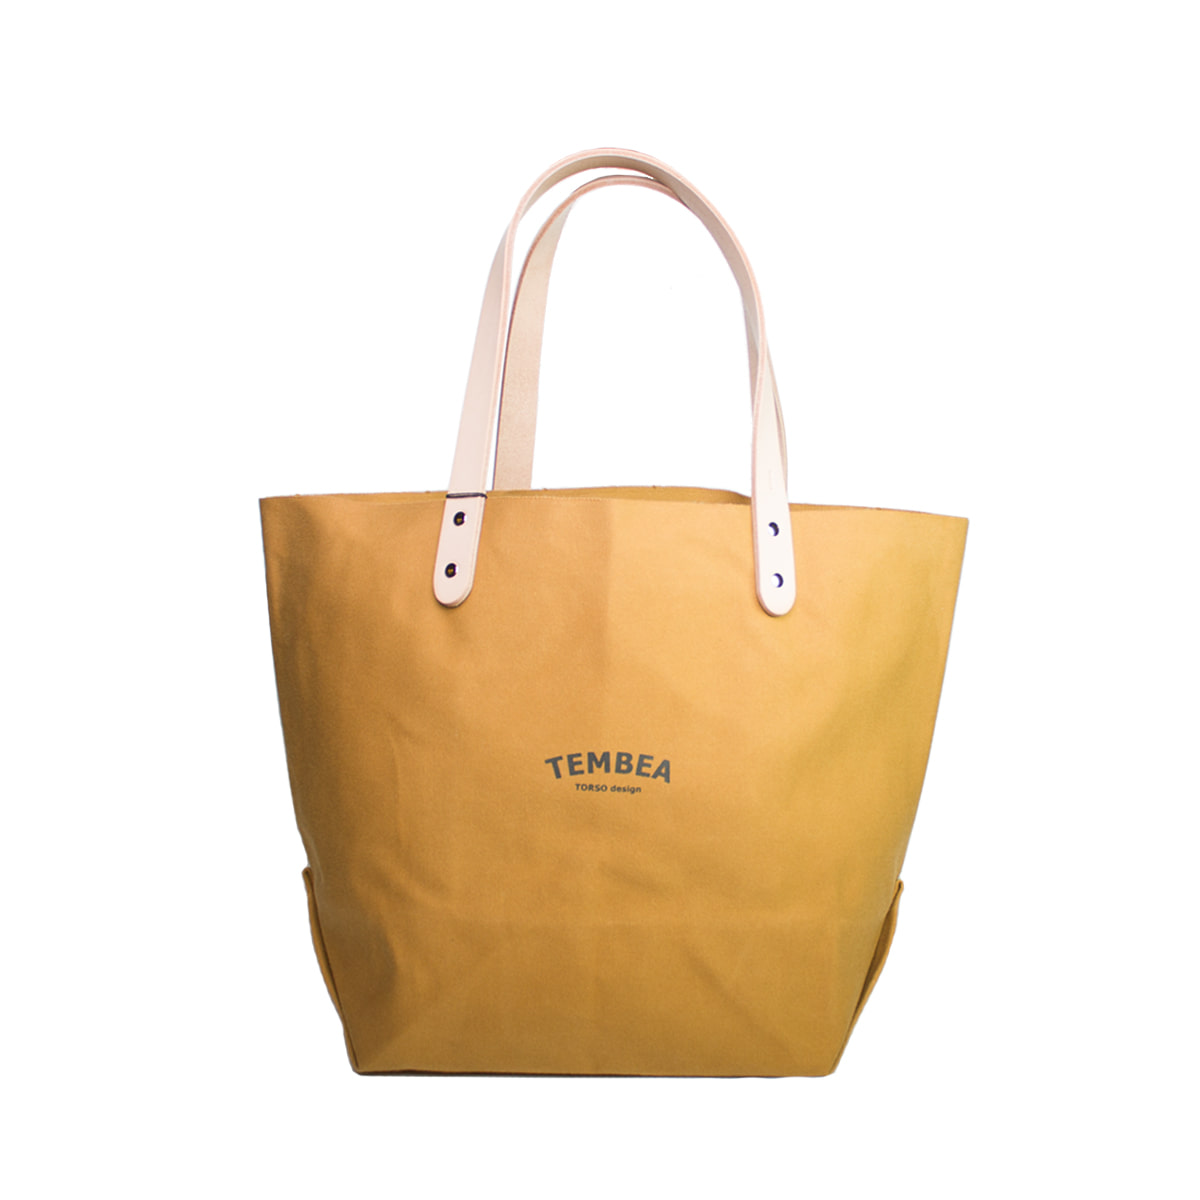 [TEMBEA] DELIVERY TOTE LARGE 'NEW BEIGE'